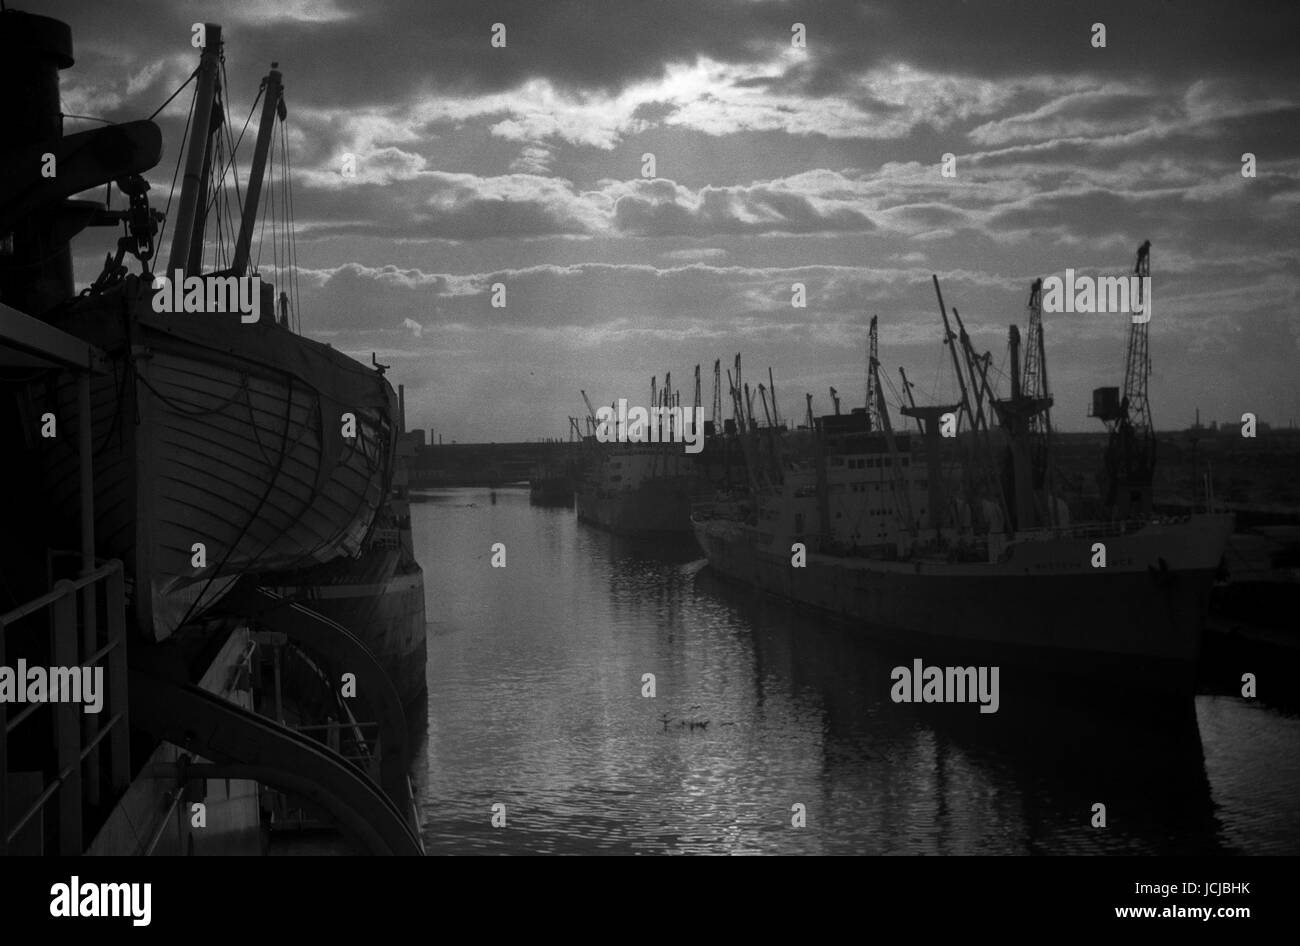 AJAXNETPHOTO. 1963. MANCHSTER, ENGLAND. - SUNSET OVER THE DOCKS - VIEW FROM THE DECK OF A CARGO SHIP OF SALFORD - Stock Image